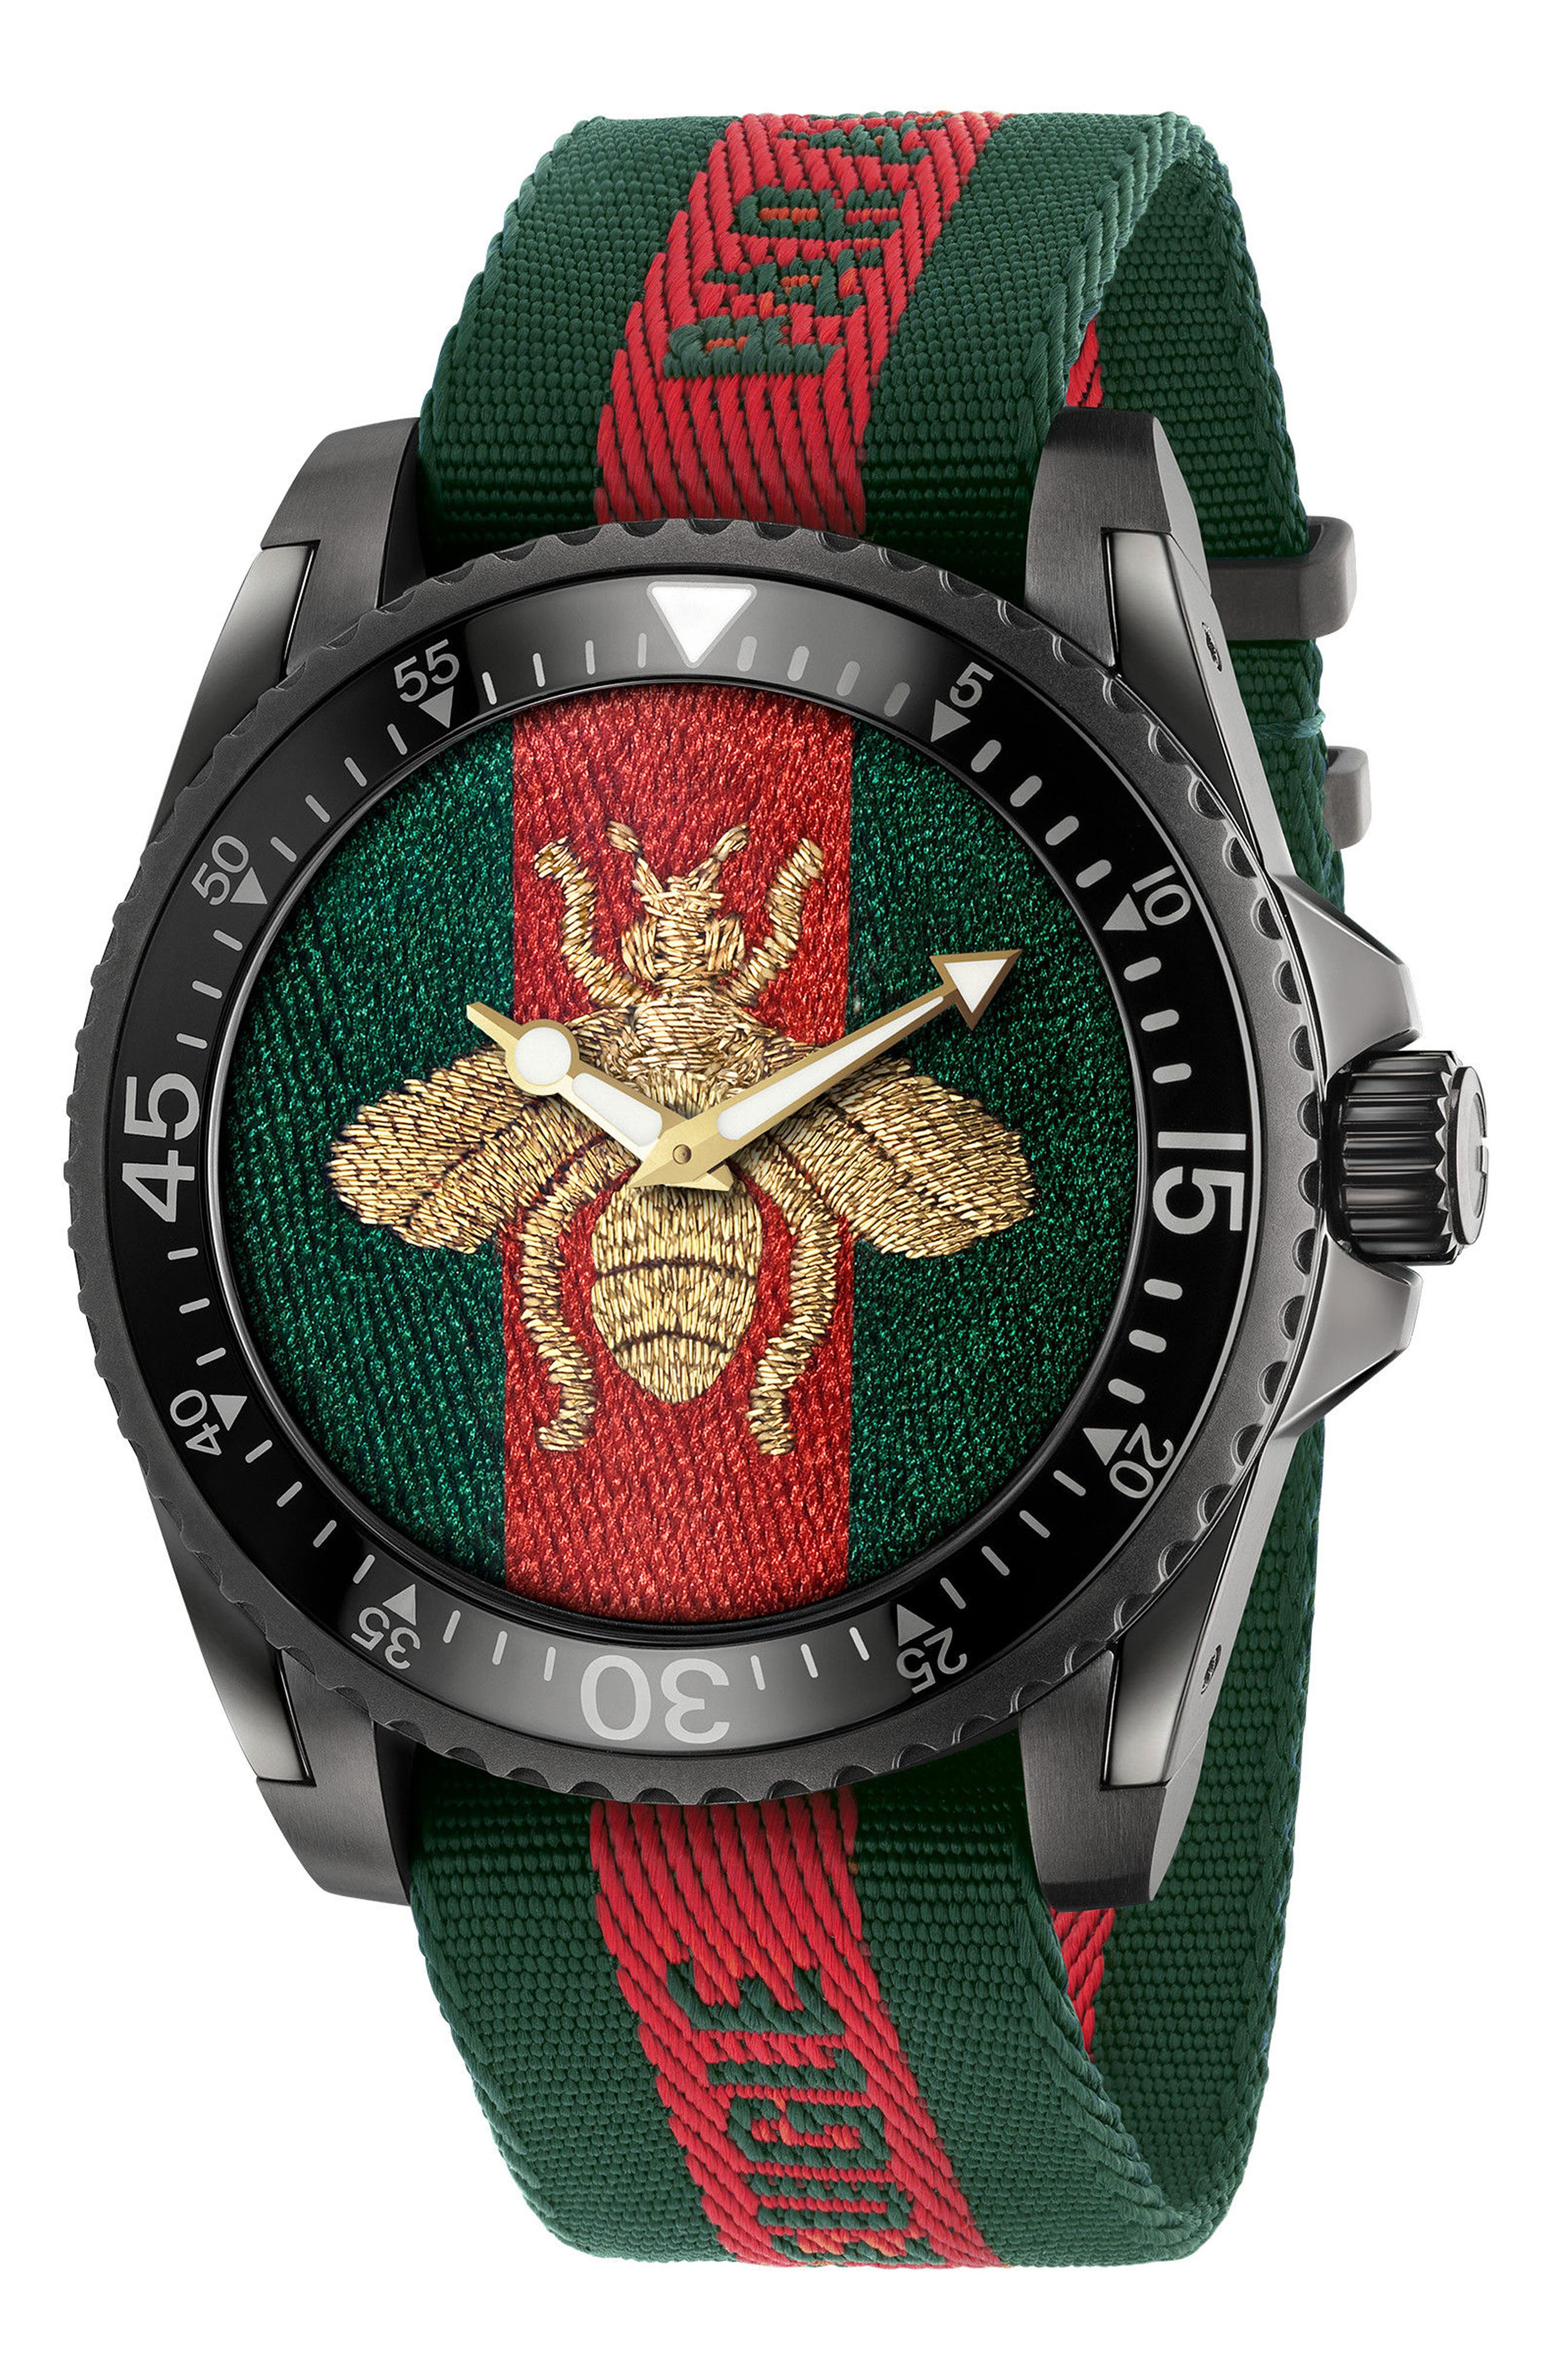 Main Image - Gucci Bee Nylon Strap Watch, 47mm